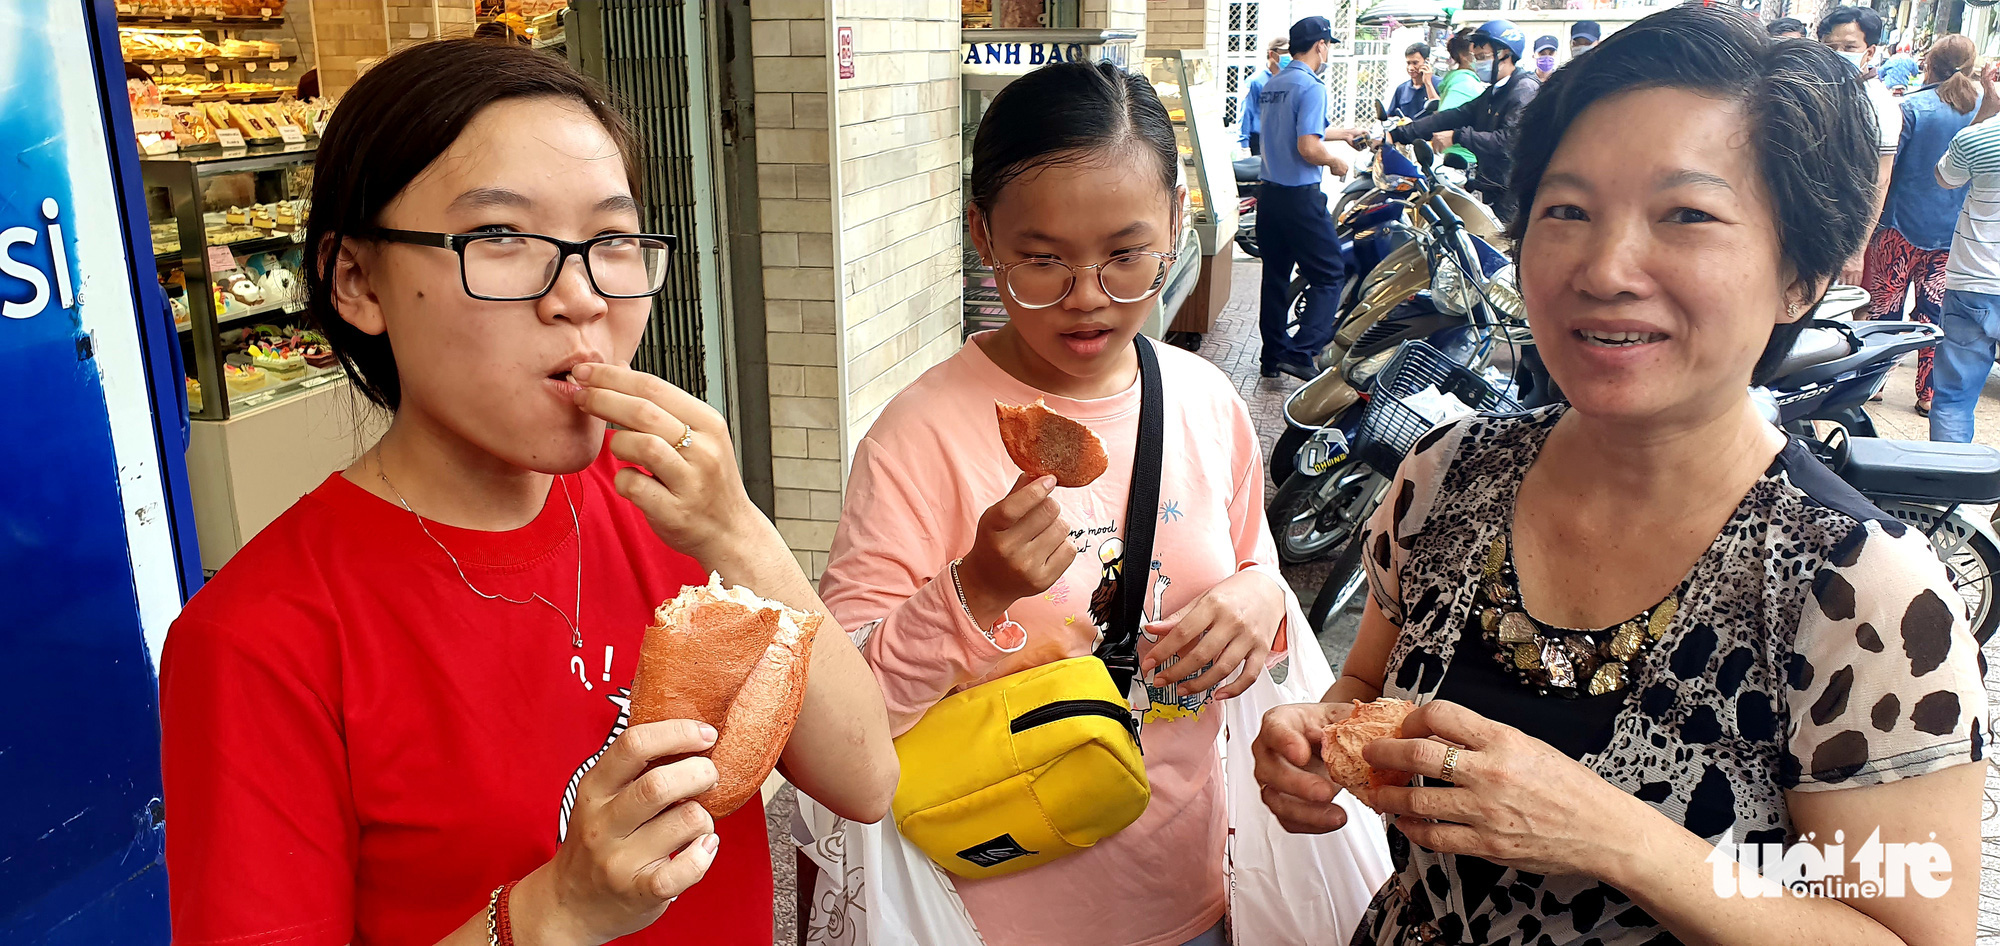 Customers react as they taste dragon fruit bread at a nABC Bakery store on Nguyen Trai Street in District 5, Ho Chi Minh City, February 16, 2020. Photo: Cong Trung / Tuoi Tre